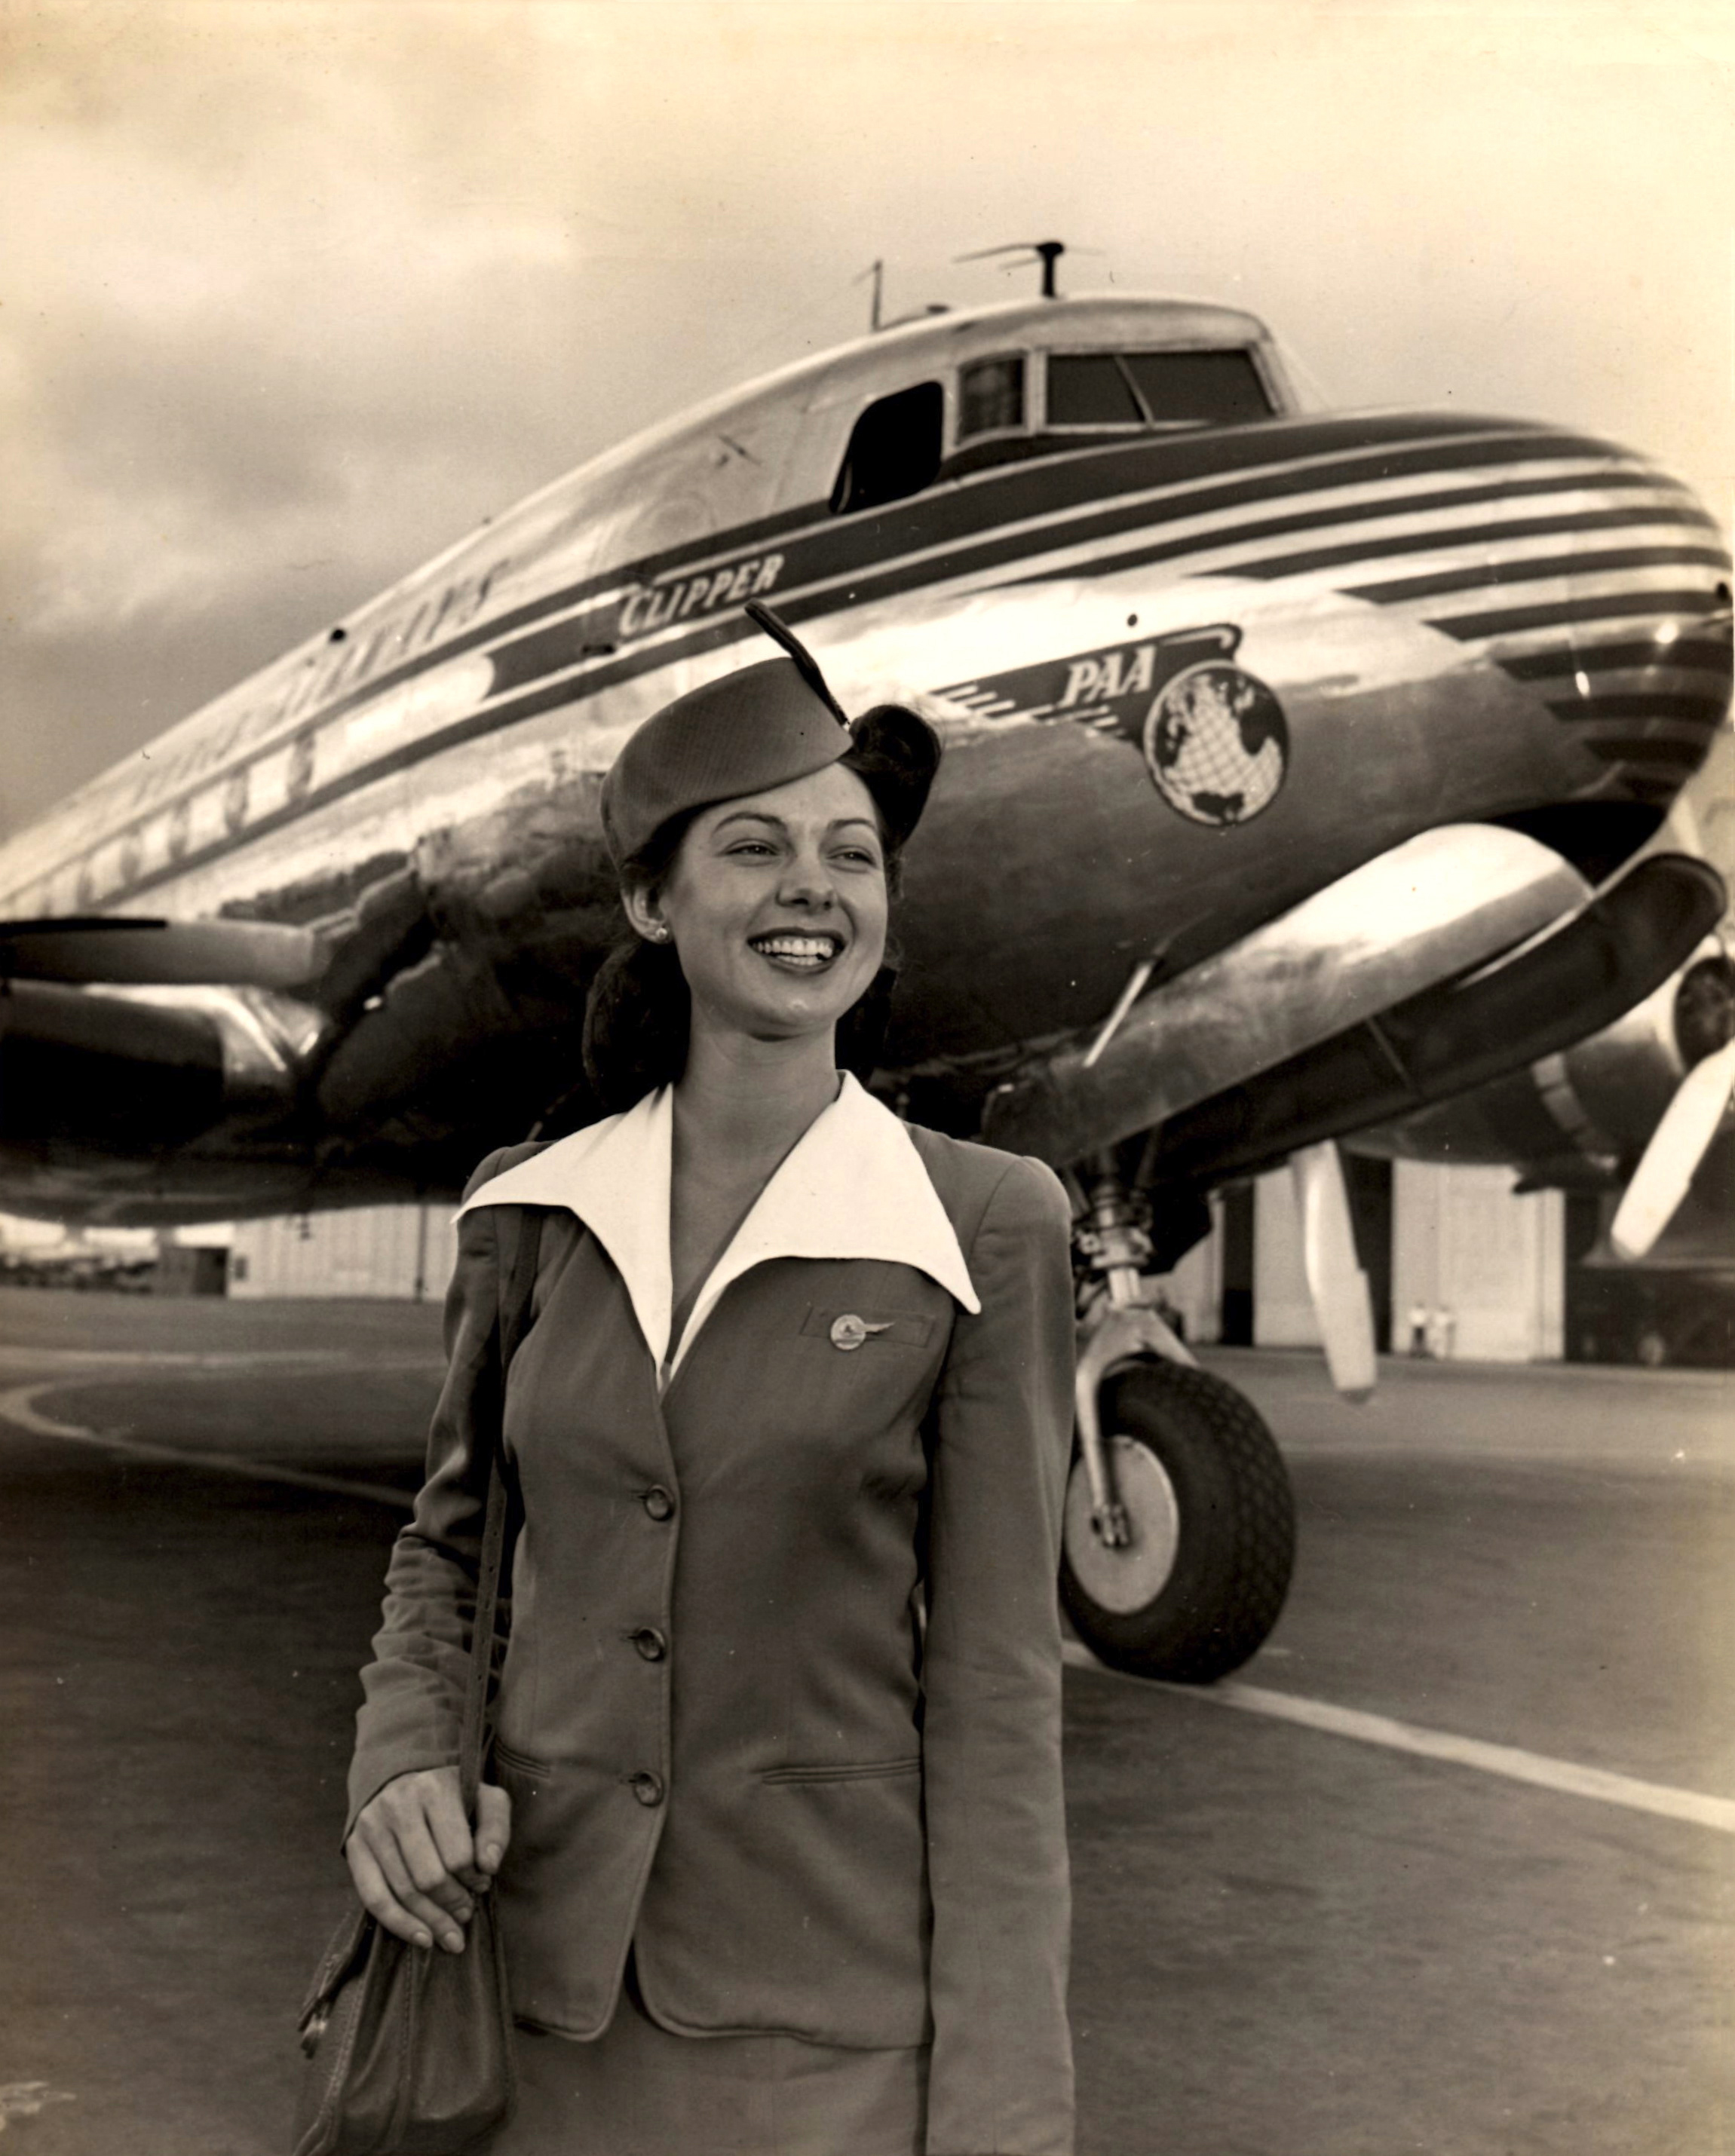 Doris stands proud in her uniform in front of a Pan American Airways DC-4